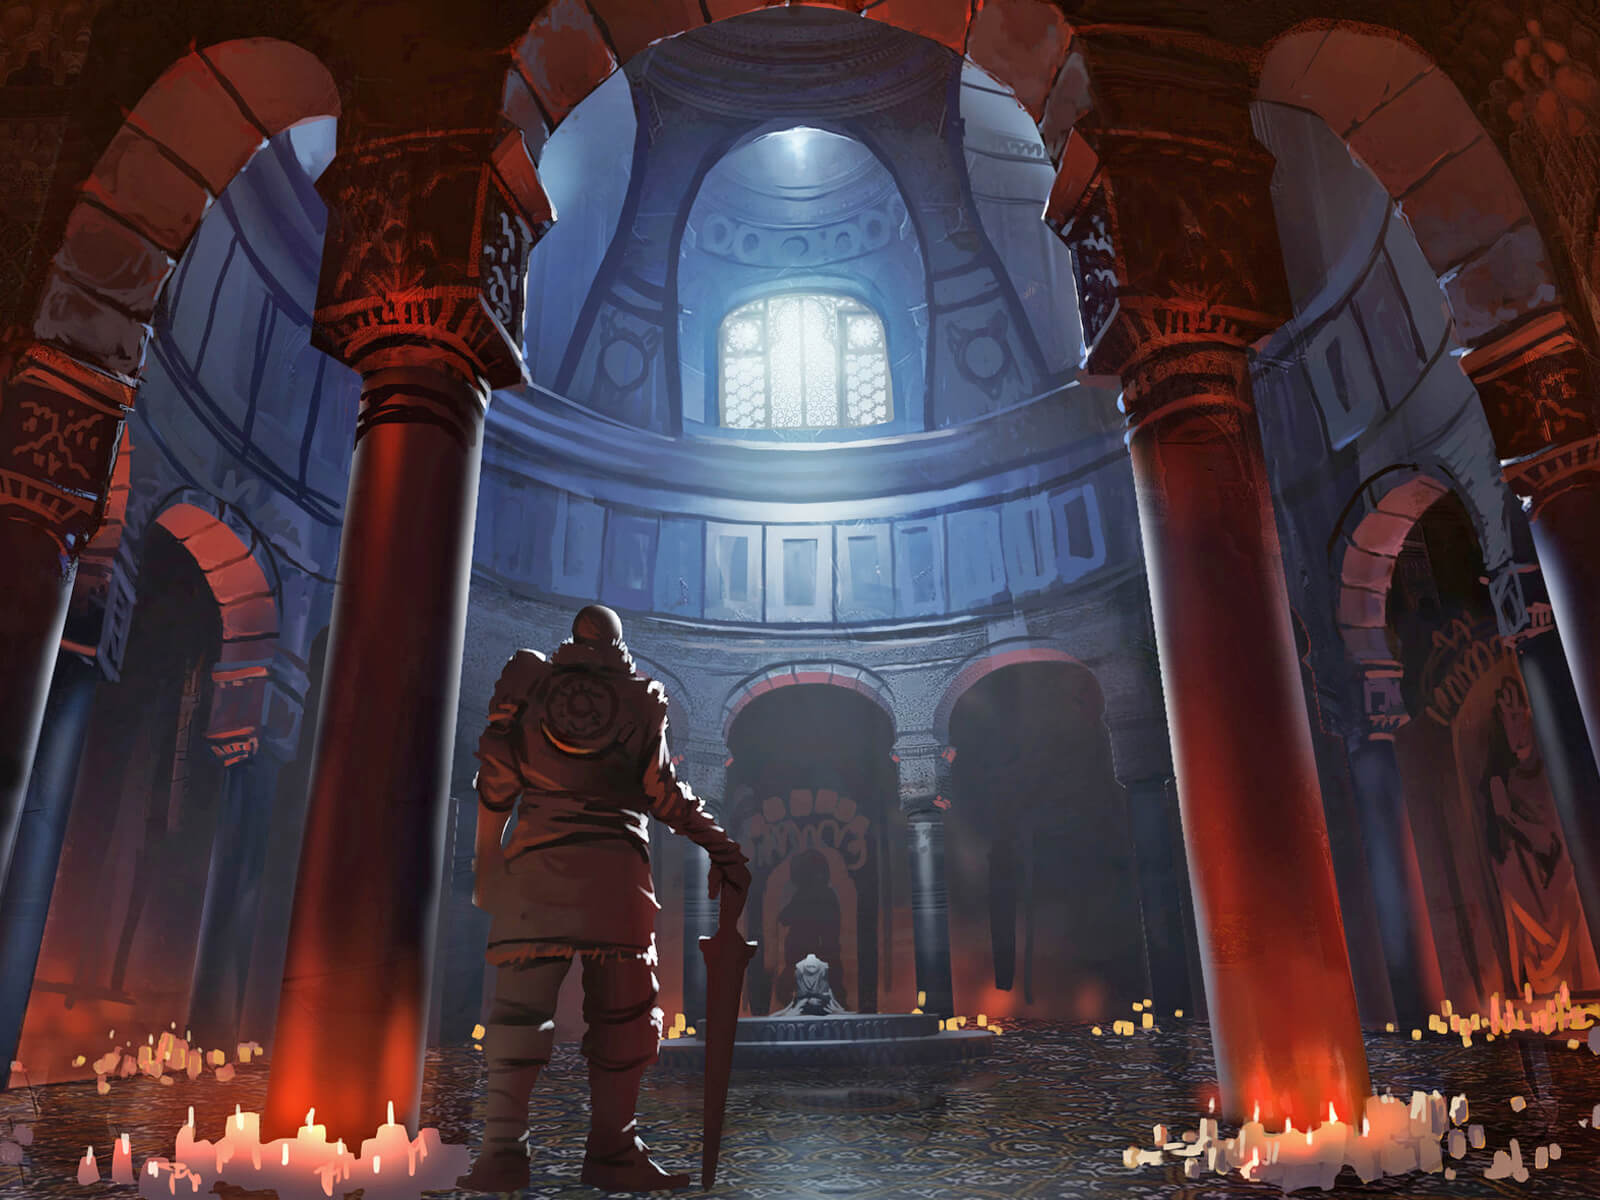 digital painting of a male character with a sword gazing into a circular room with lit candles all around